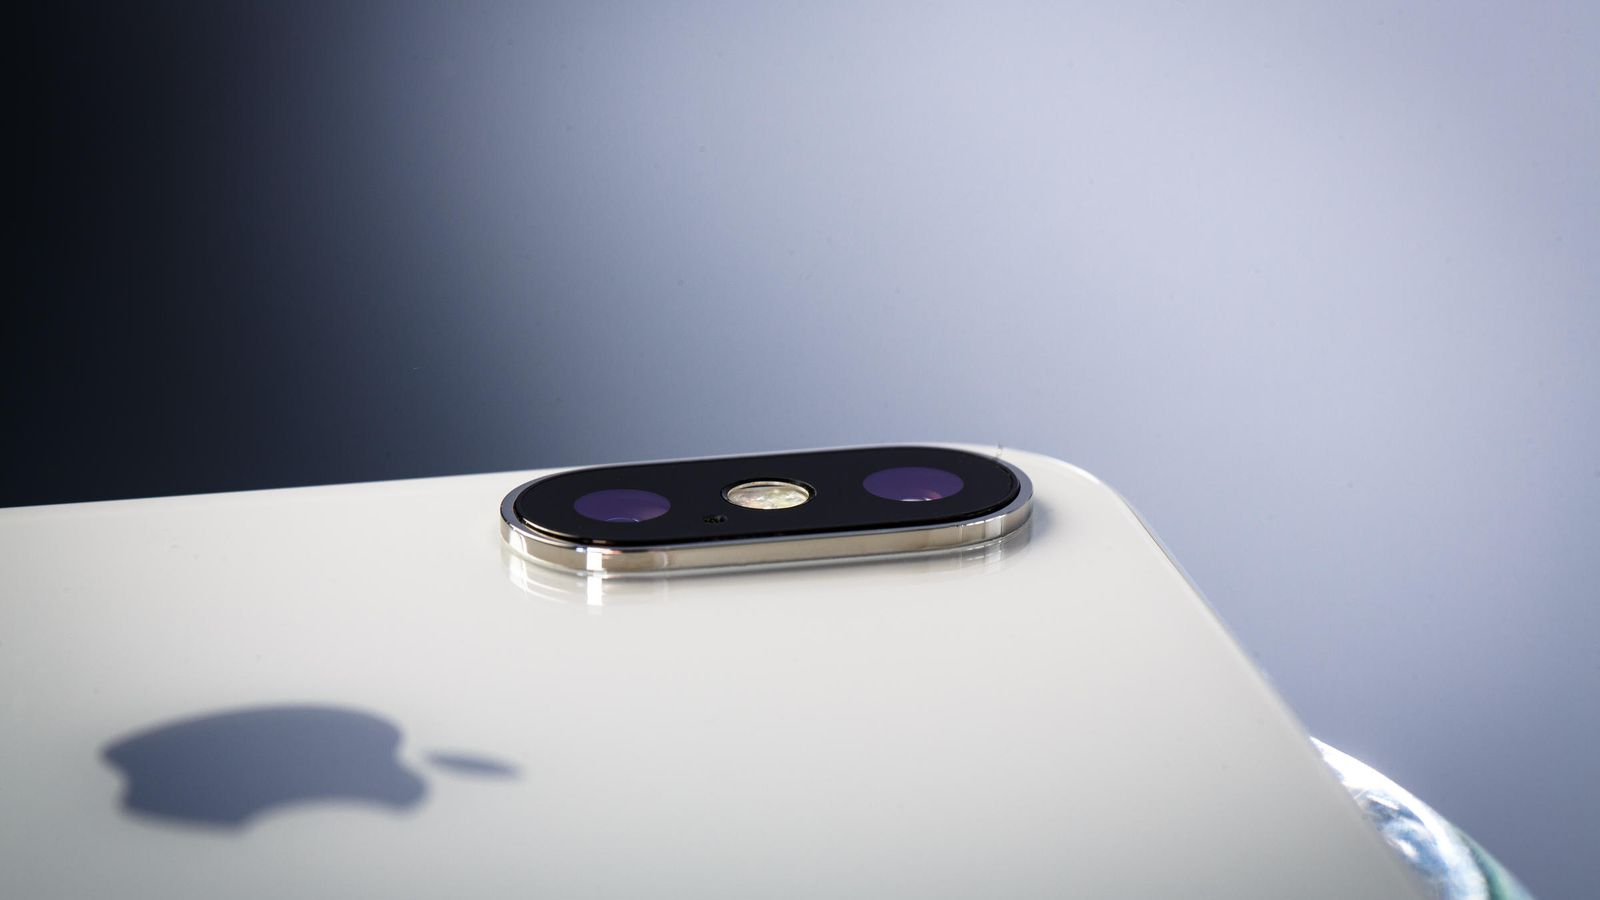 Rumour - The next iPhone will feature three camera lenses